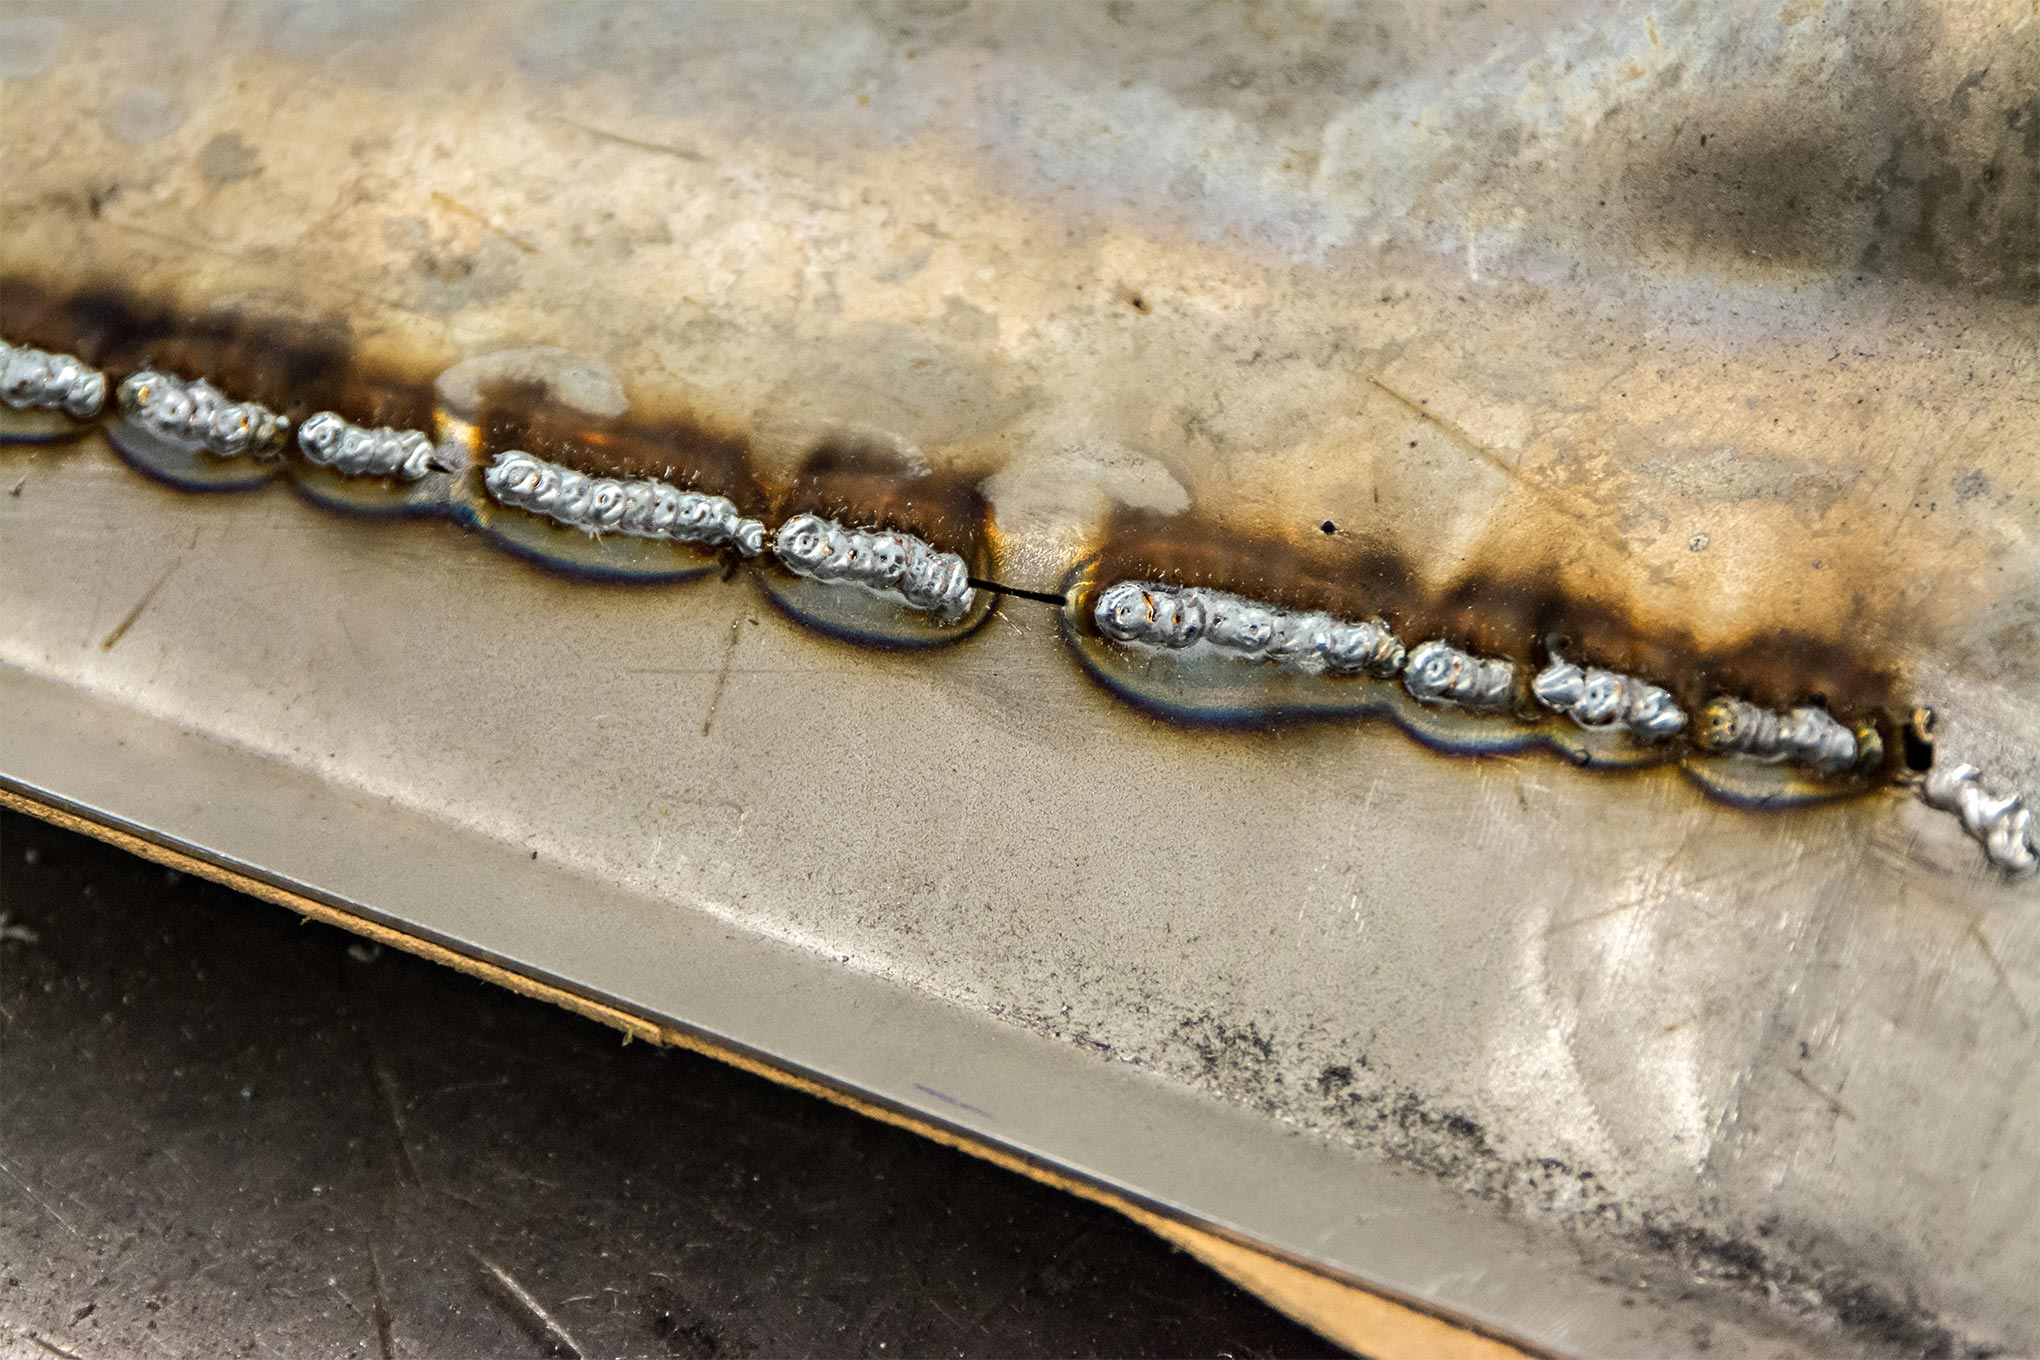 MCR never, ever runs a bead when welding body sheet metal. Instea, a series of four or five quick tack welds are used and these groupings are never right next to each other either. Spacing them apart as well allows the metal to cool before they come back to that area again.